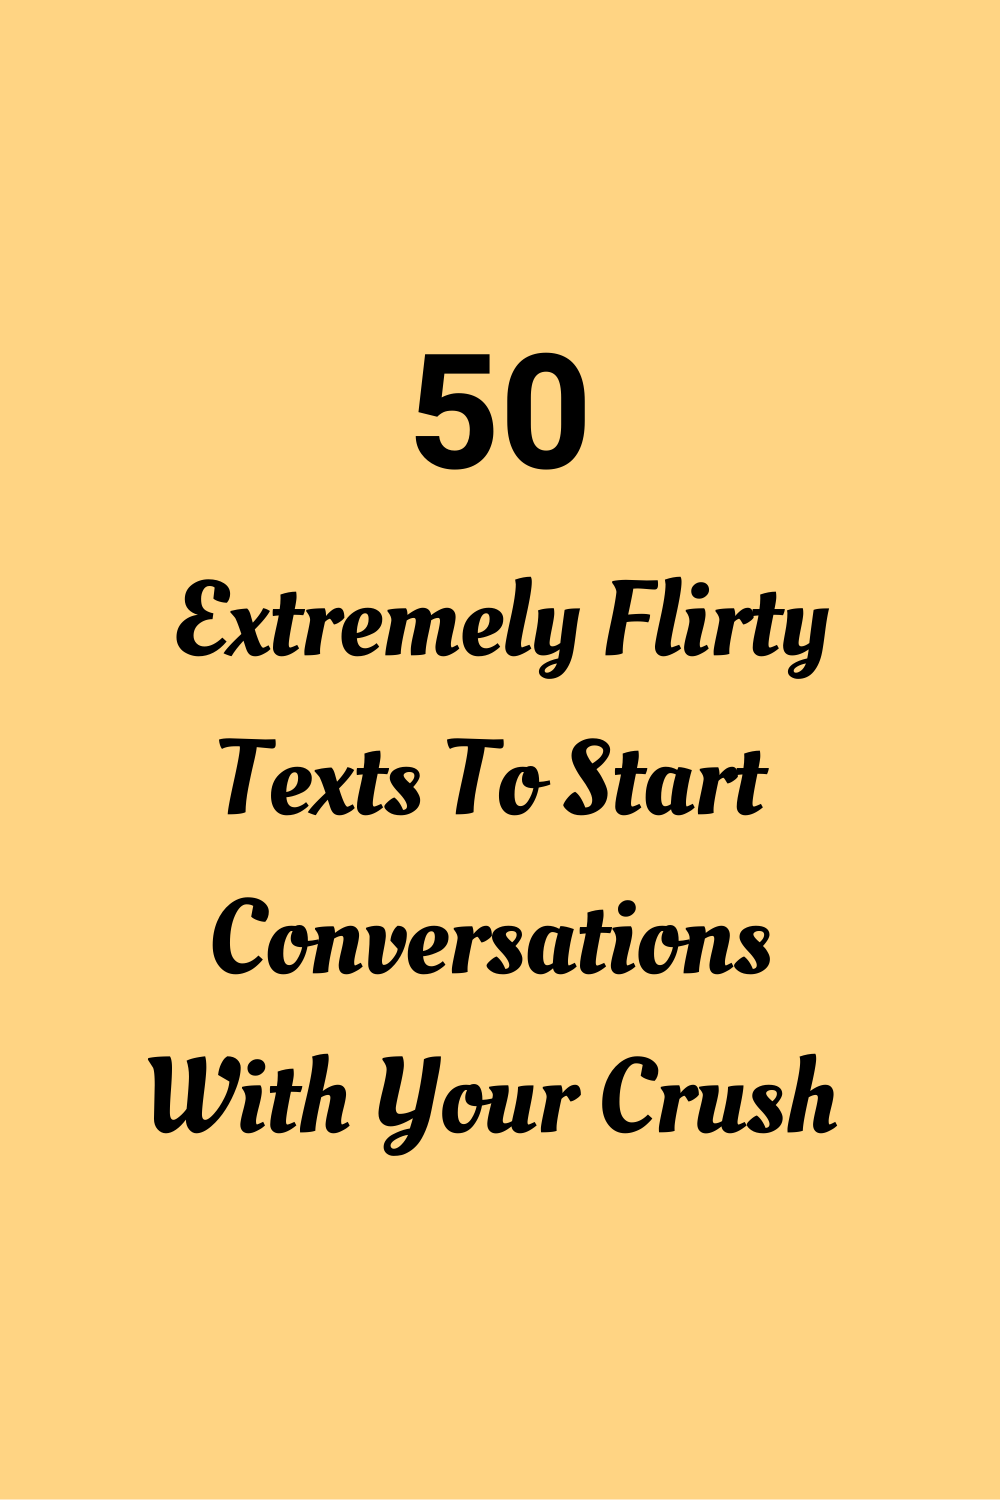 50 Extremely Flirty Texts To Start Conversations With Your Crush